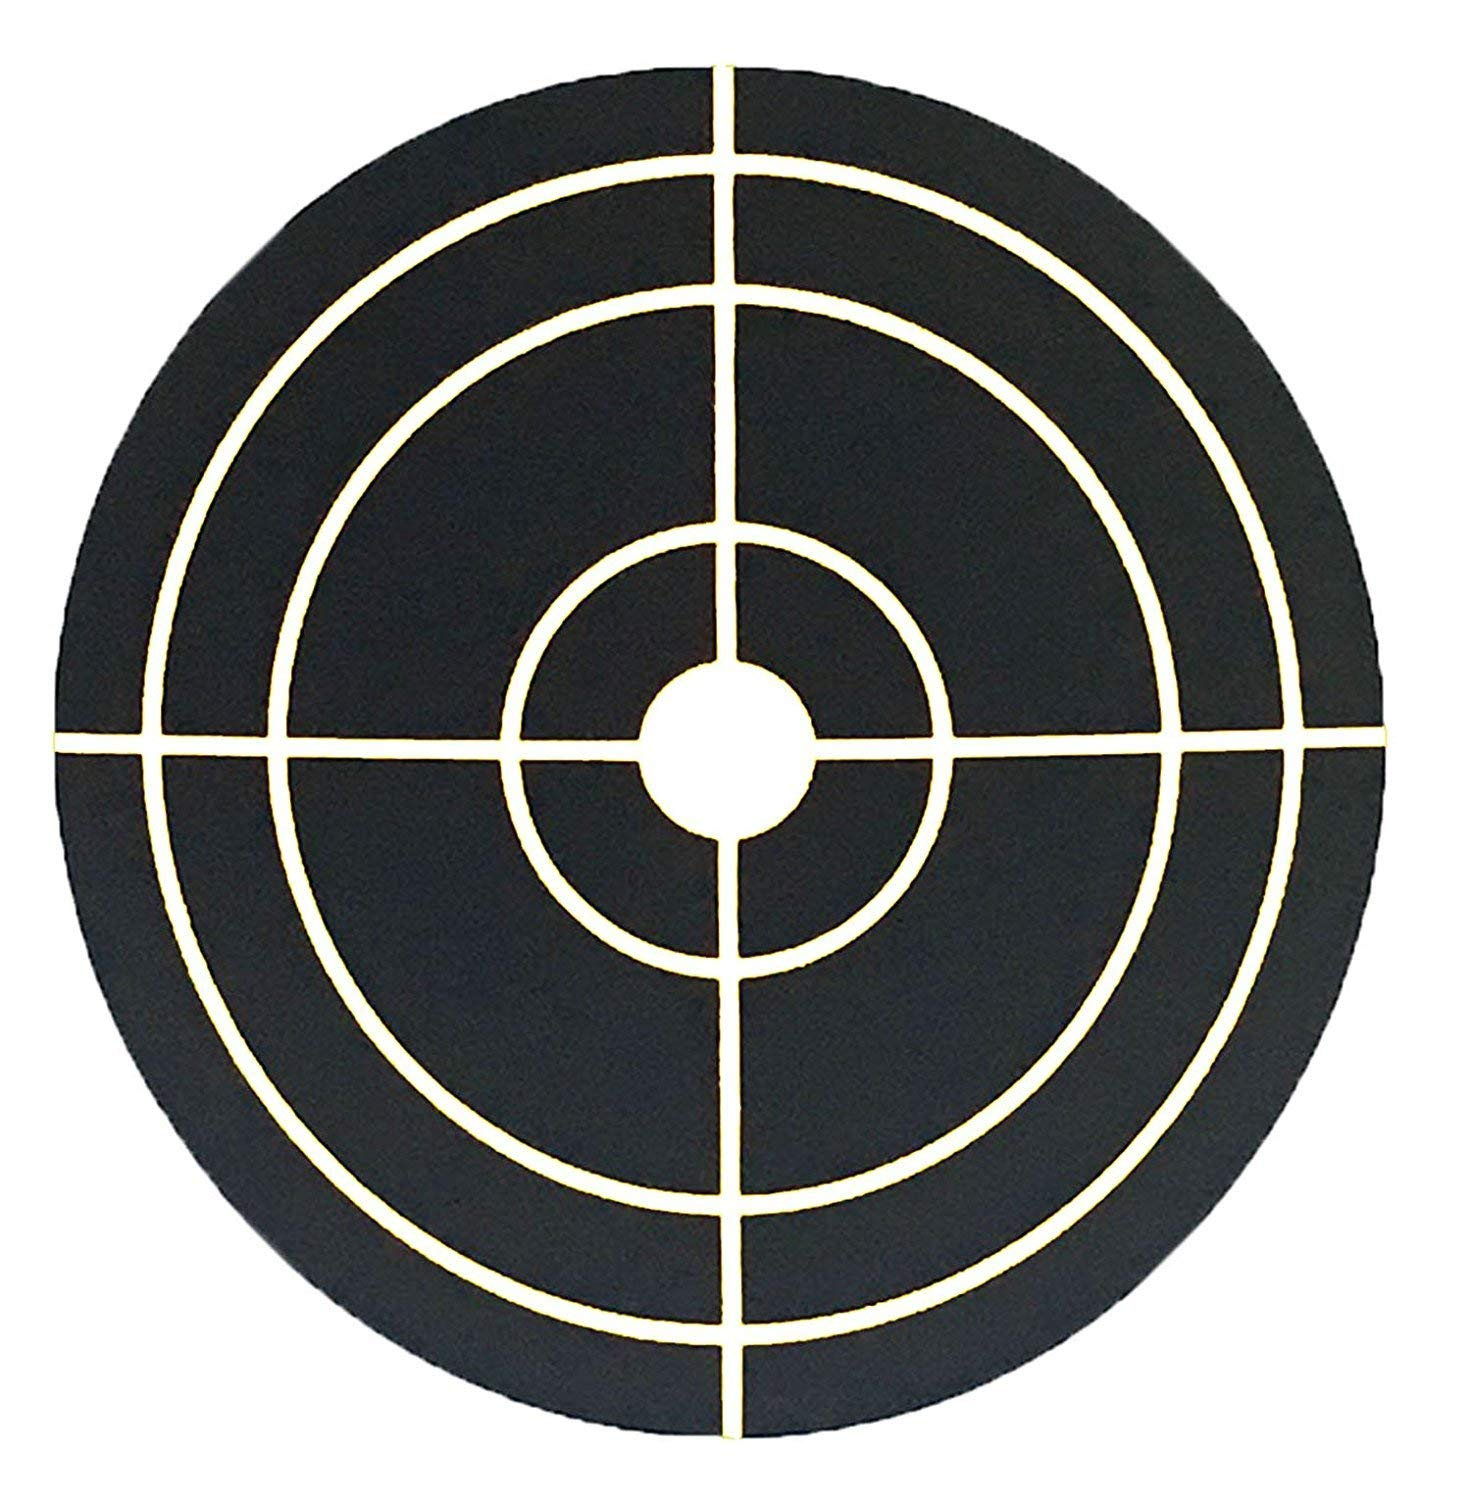 250 Targets Per Roll Besttile 3 Inch Fluorescent Green Self-Adhesive Target Stickers for Shooting